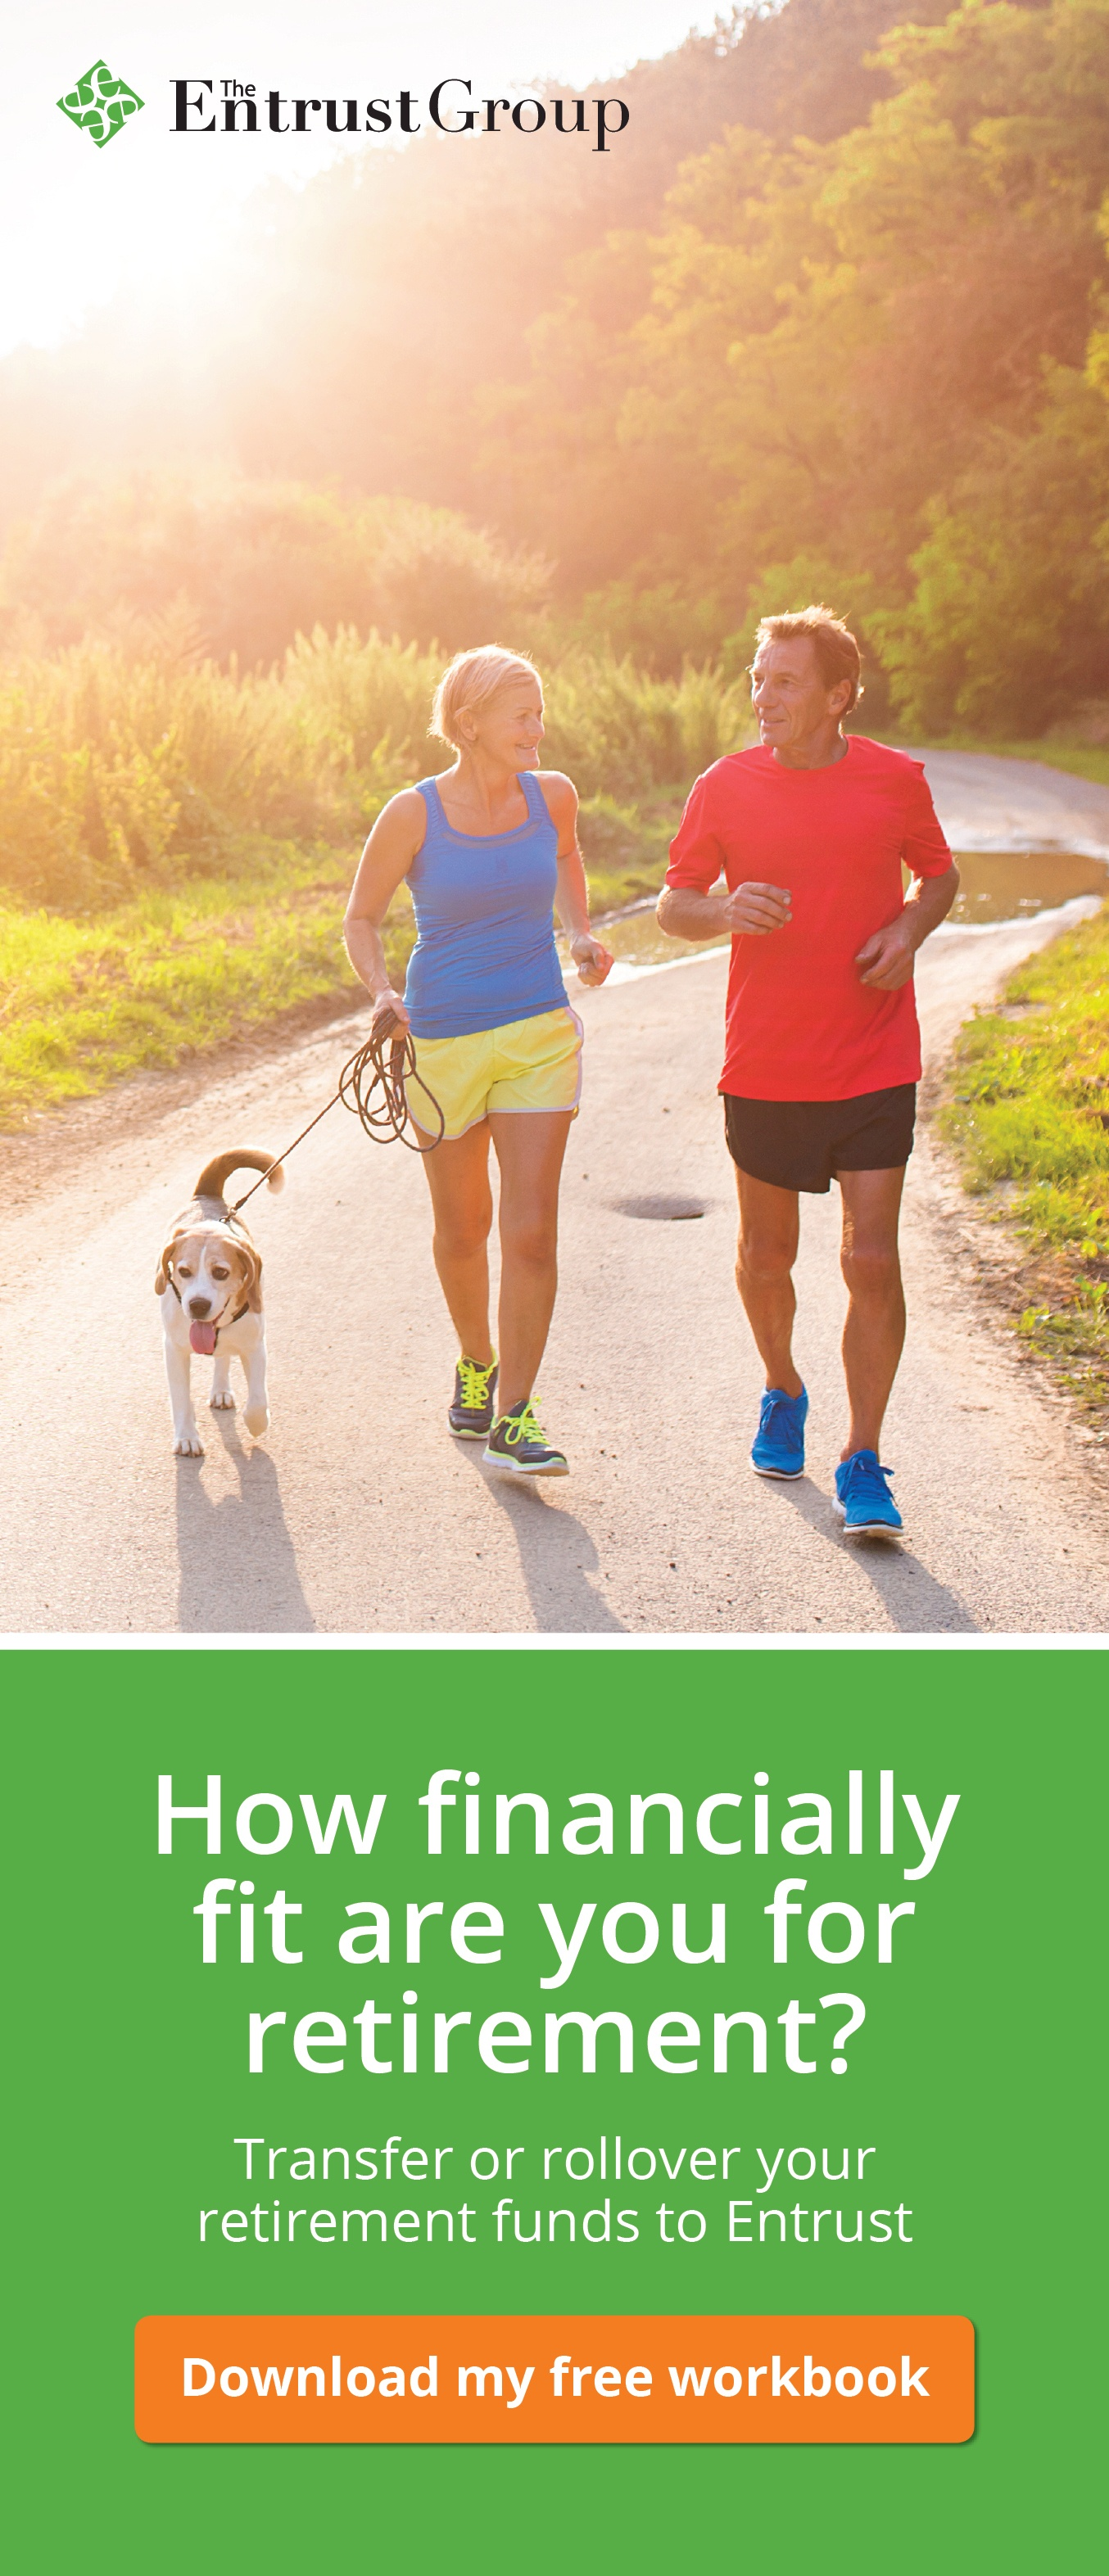 How financially fit are you for retirement? - Middle age man and women